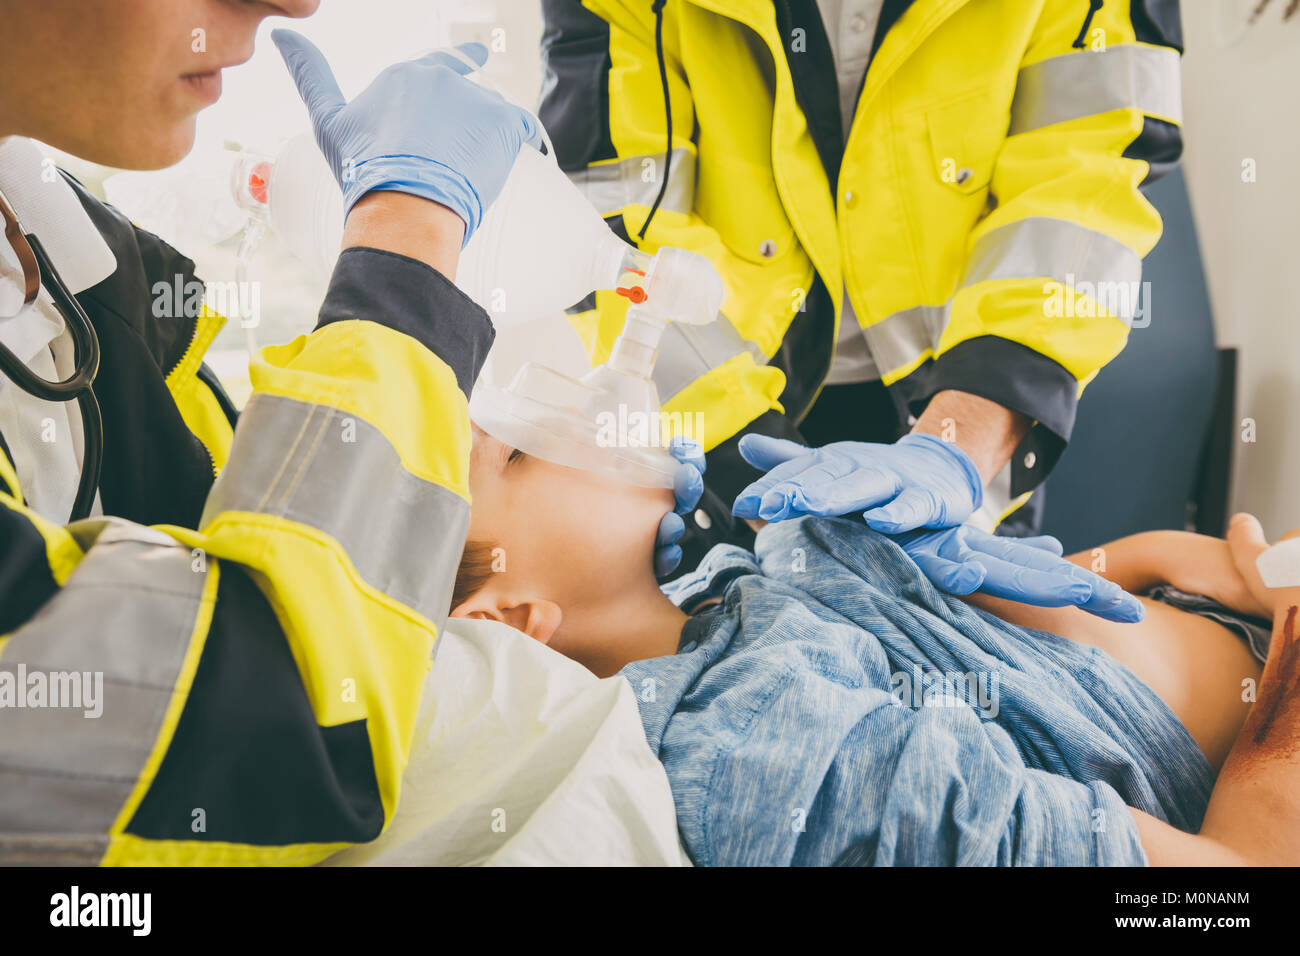 Emergency doctor giving cardiac massage for reanimation in ambul Stock Photo